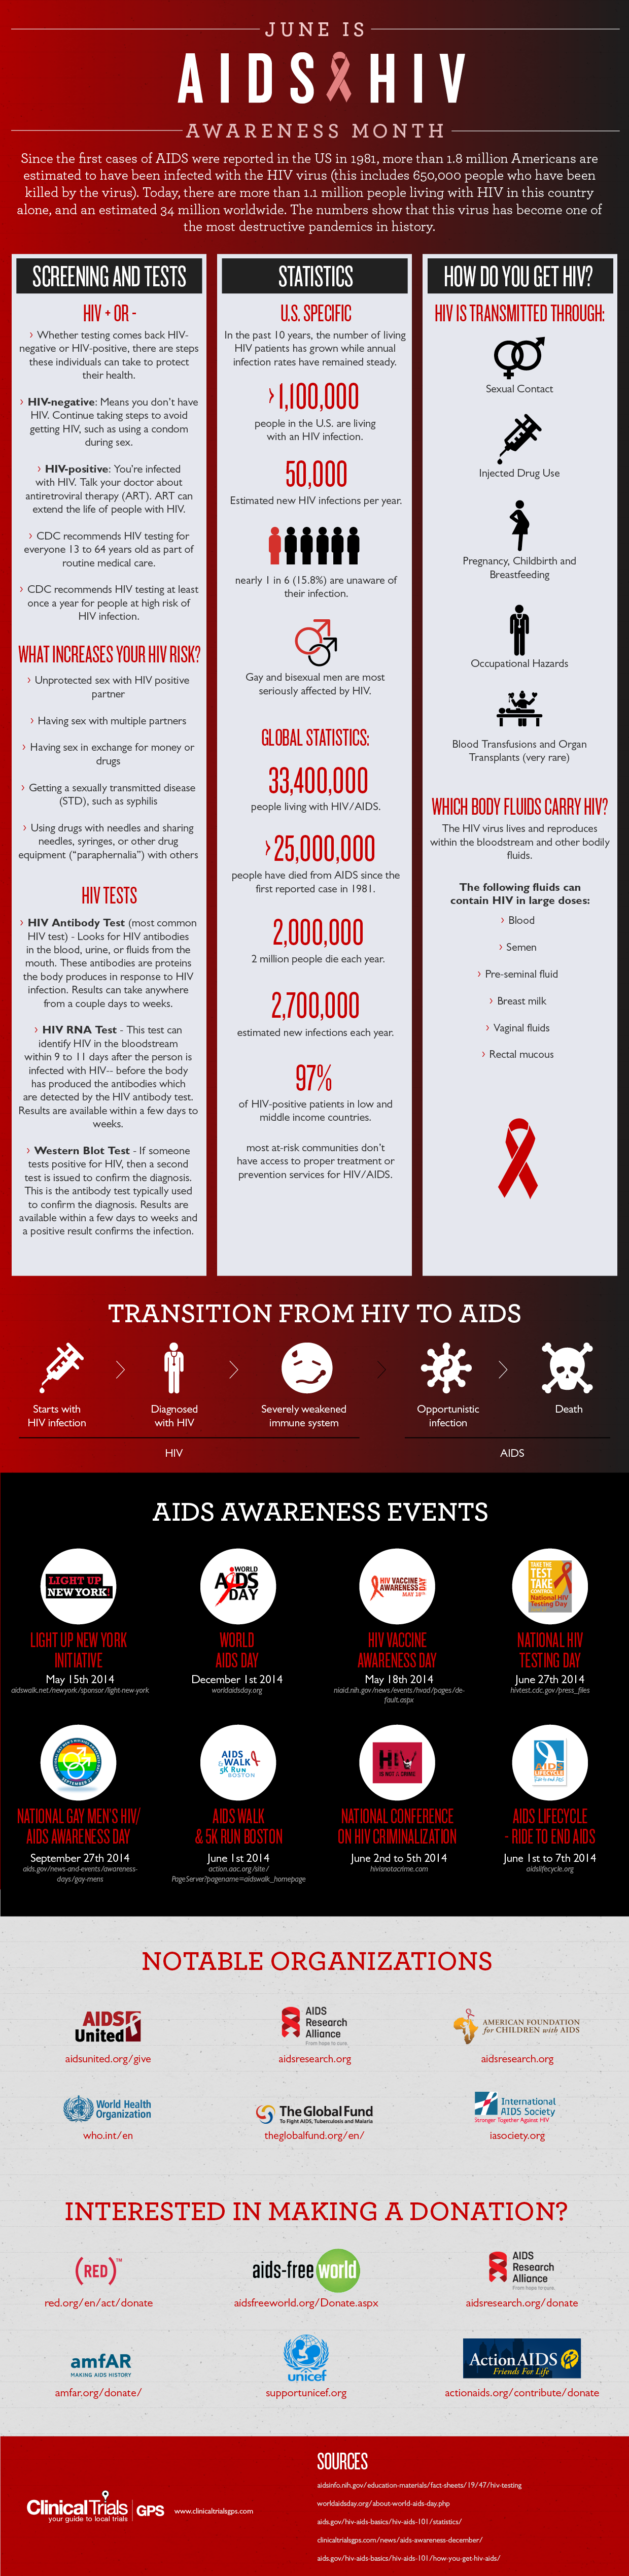 best ideas about aids statistics hiv facts aids 17 best ideas about aids statistics hiv facts aids disease and hiv aids facts